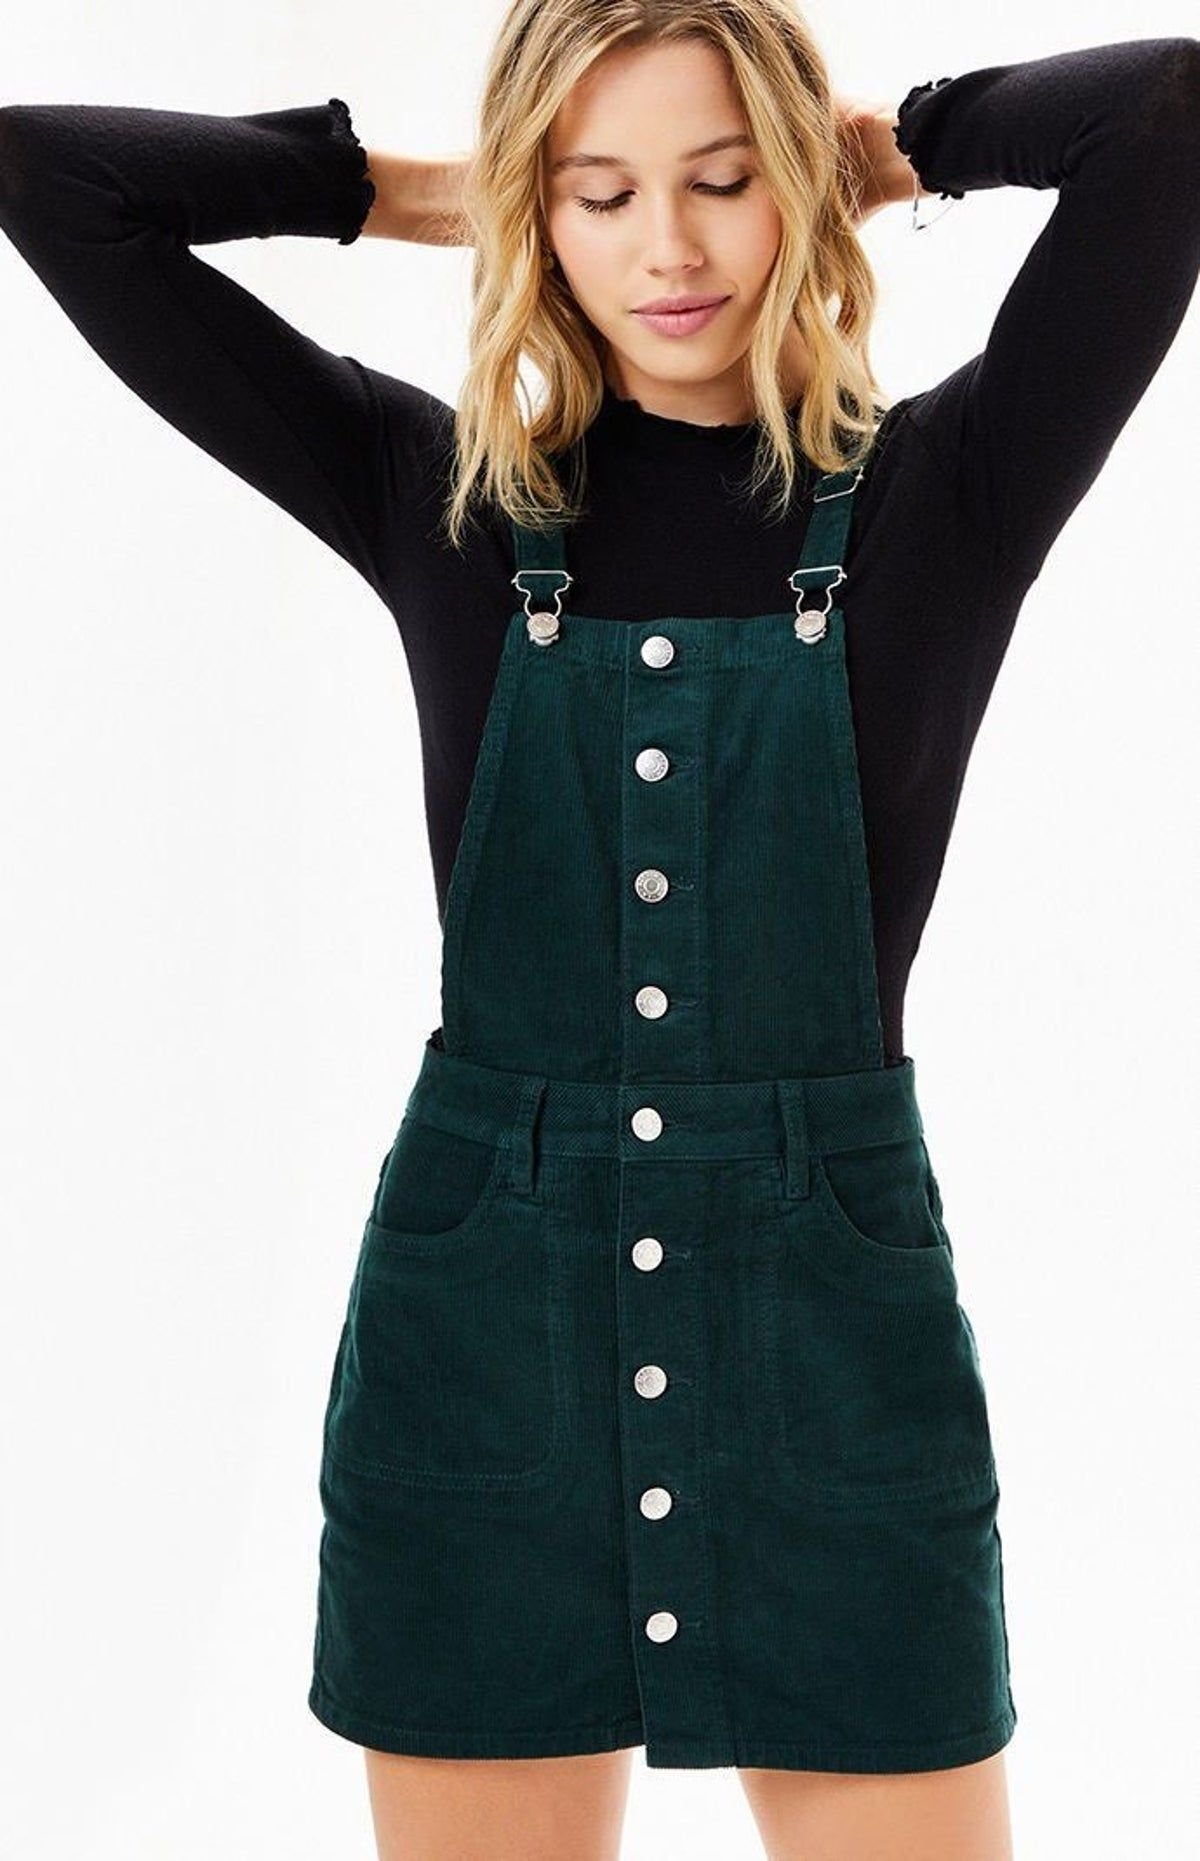 Pin By Asia Andrews On Clothes Corduroy Overall Dress Corduroy Dress Outfit Fashion [ 1861 x 1200 Pixel ]